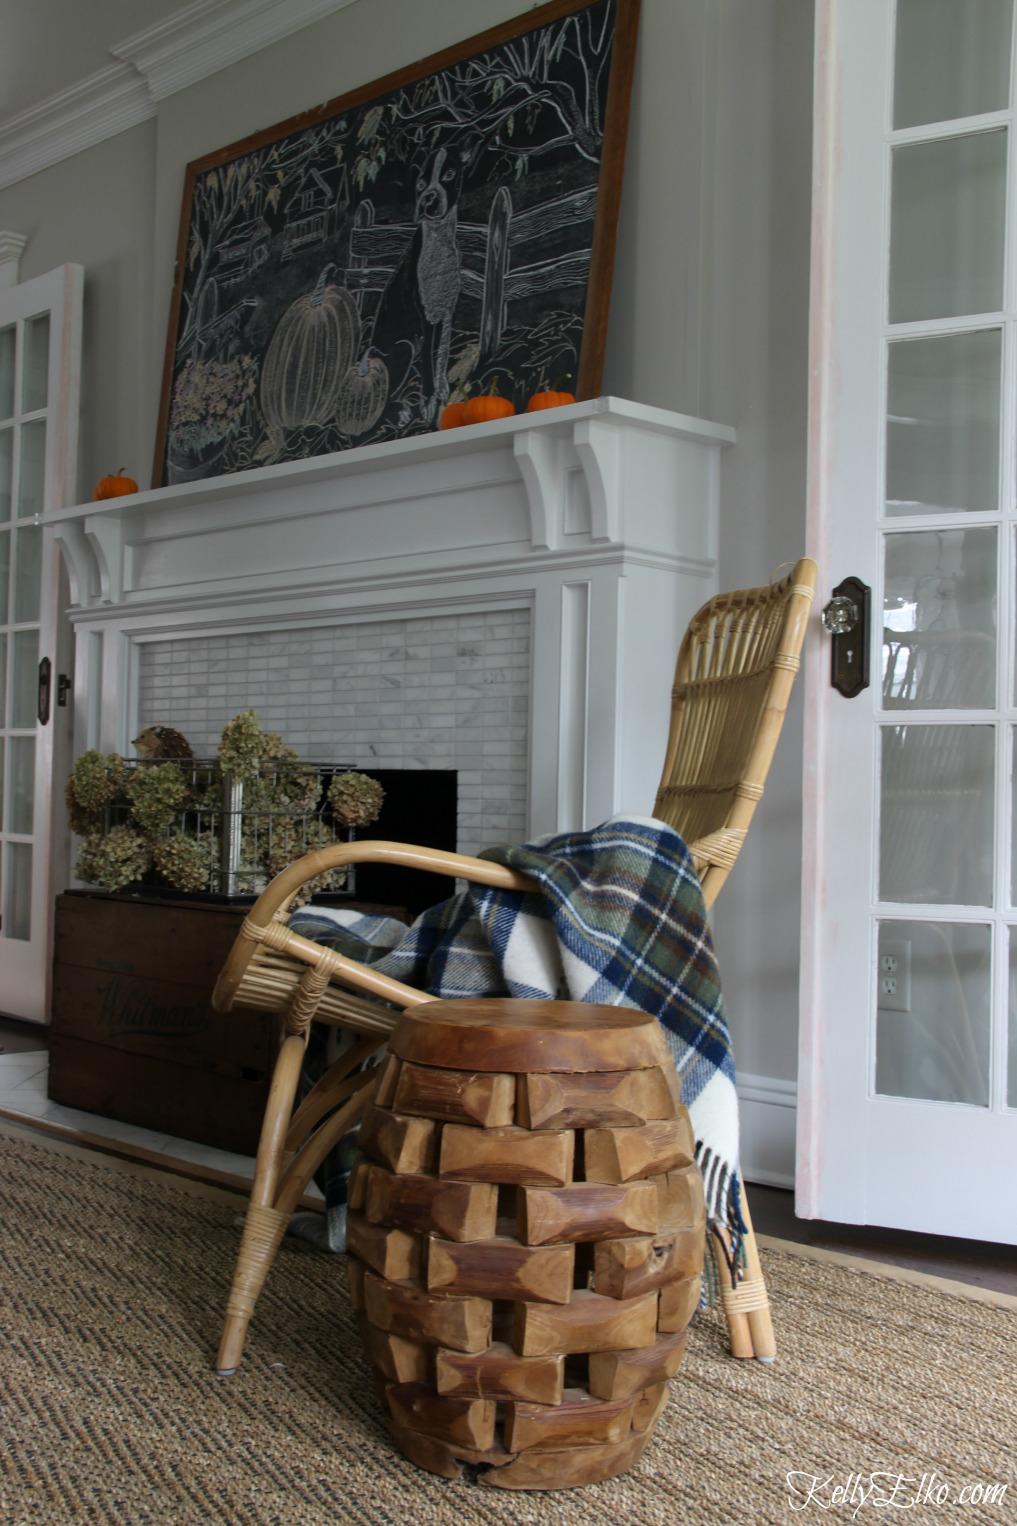 Eclectic living room with wicker, wood and sisal and a giant chalkboard kellyelko.com